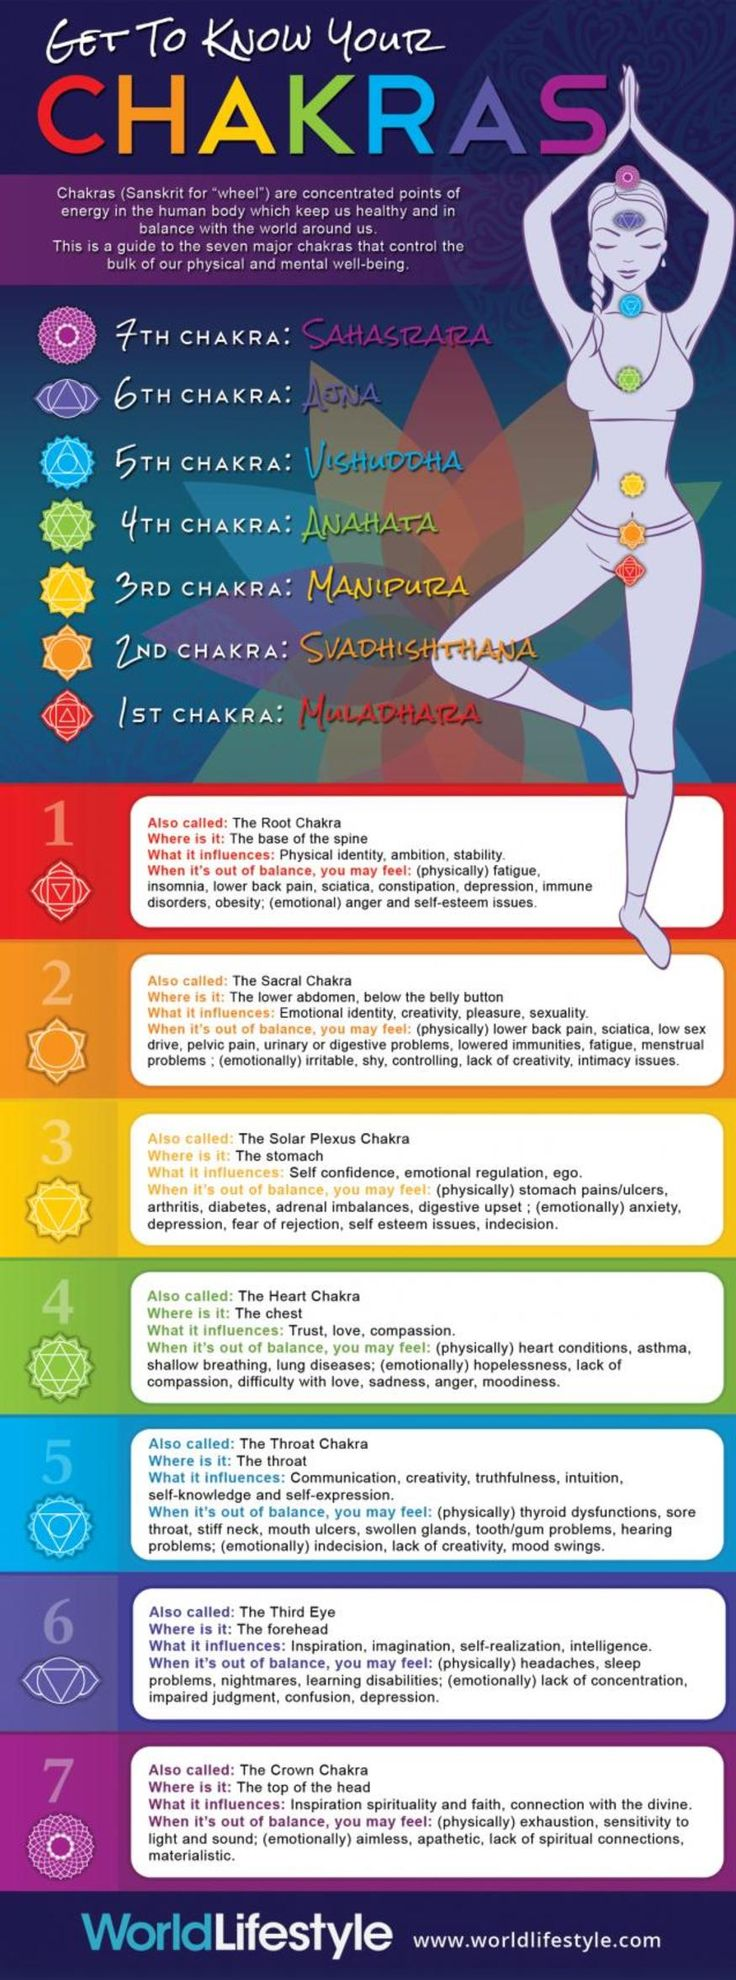 Do you know your chakras? Well get to know it with this little cheat sheet!